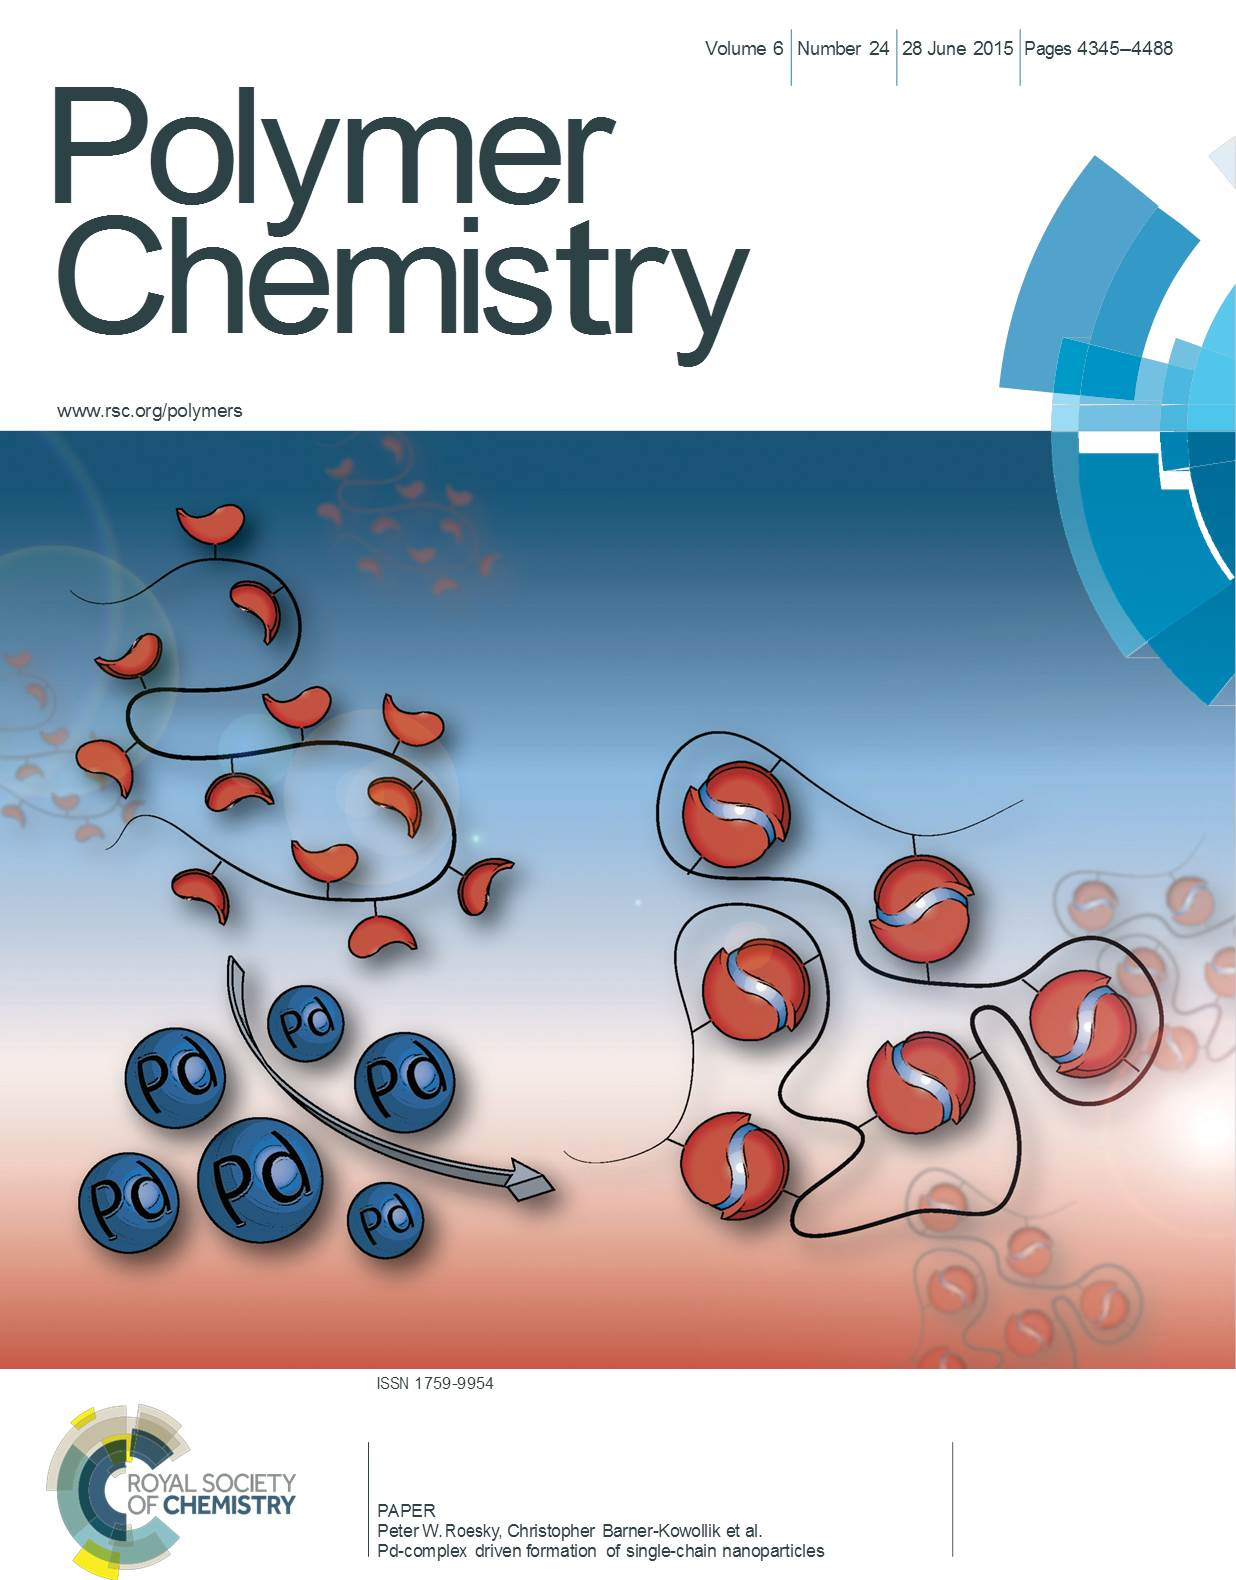 Editorial Board's top picks from Polymer Chemistry